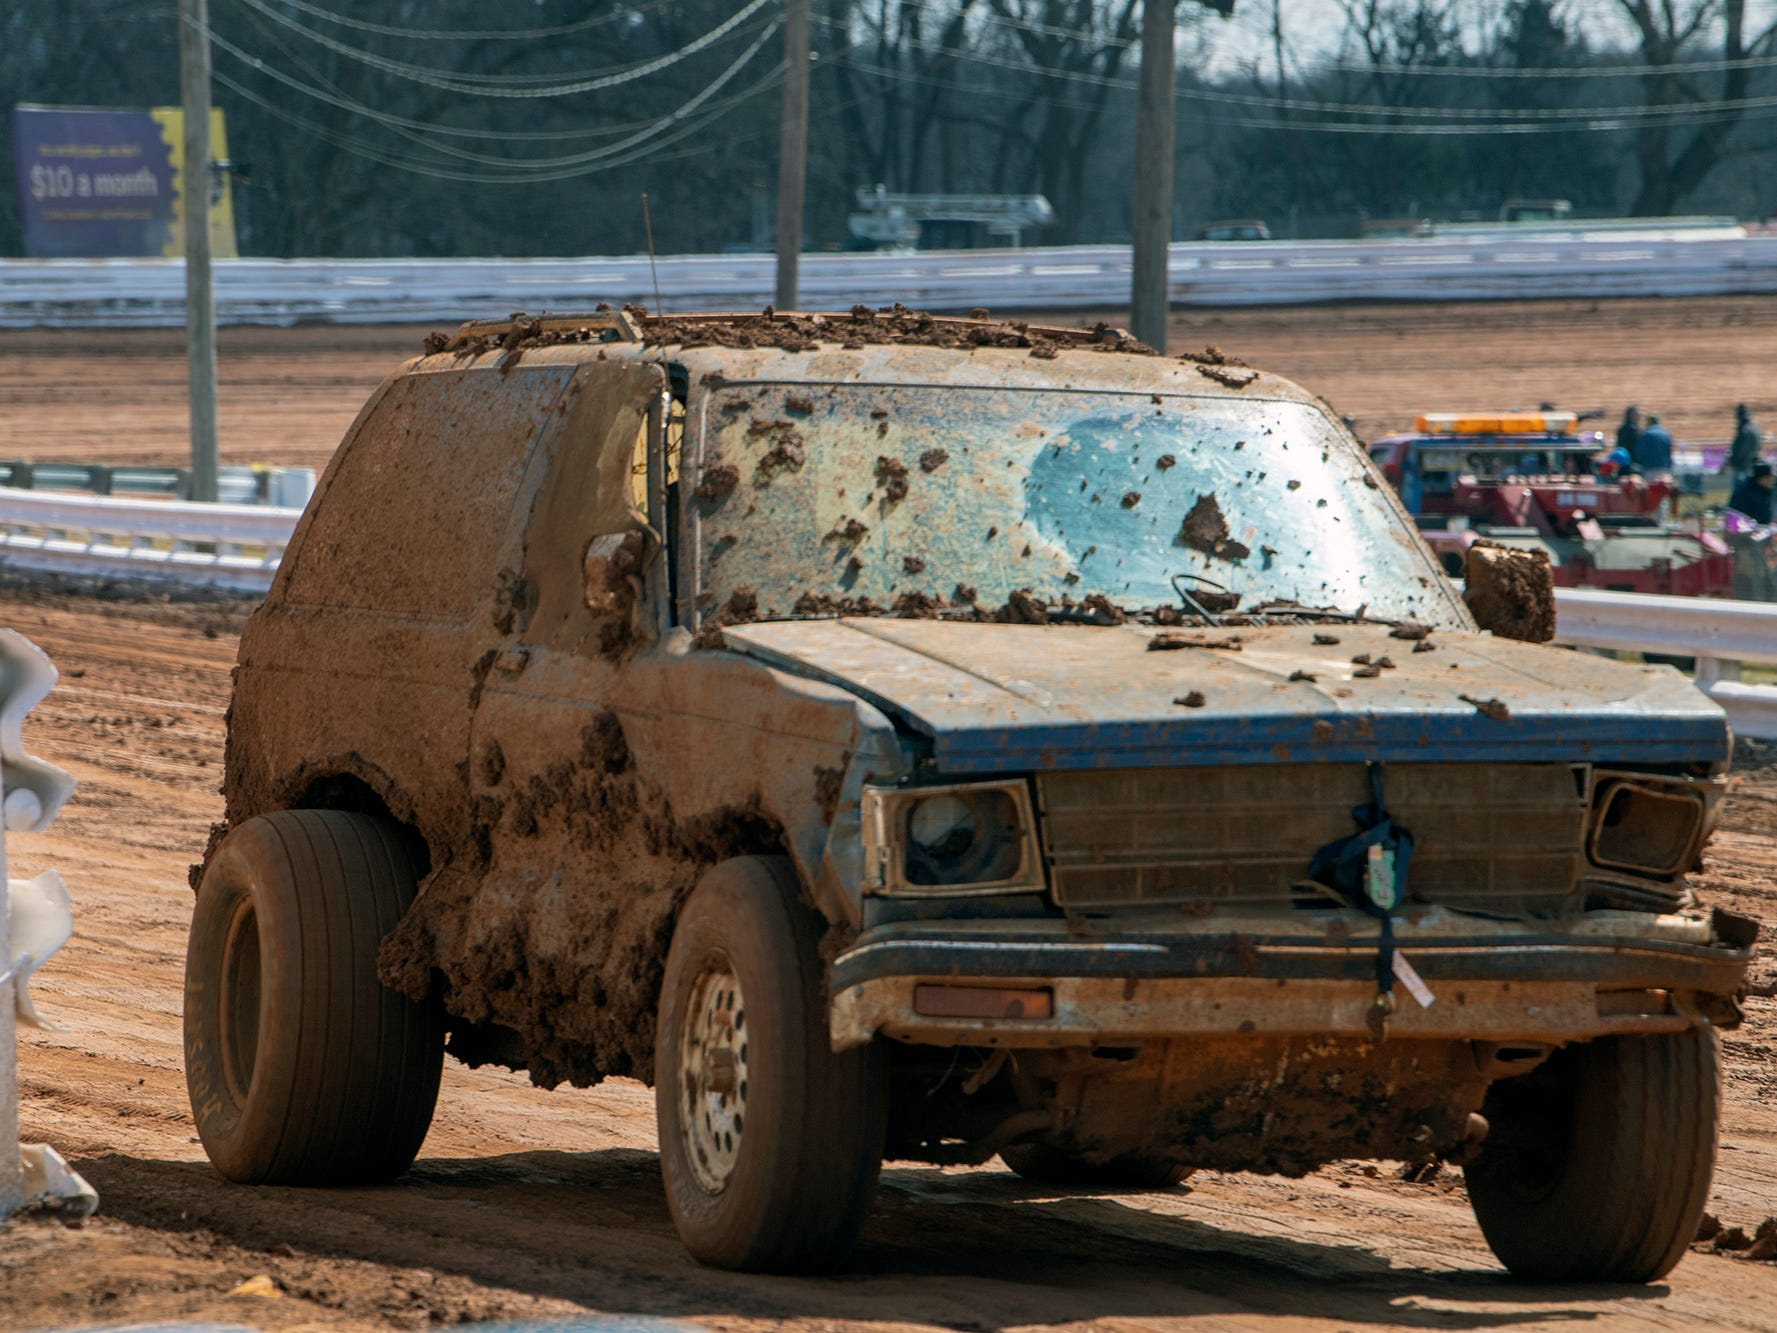 A mud slogged vehicle with fat tires makes laps to condition the clay track before the Williams Grove season opener for 410 sprints Sunday March 17, 2019.